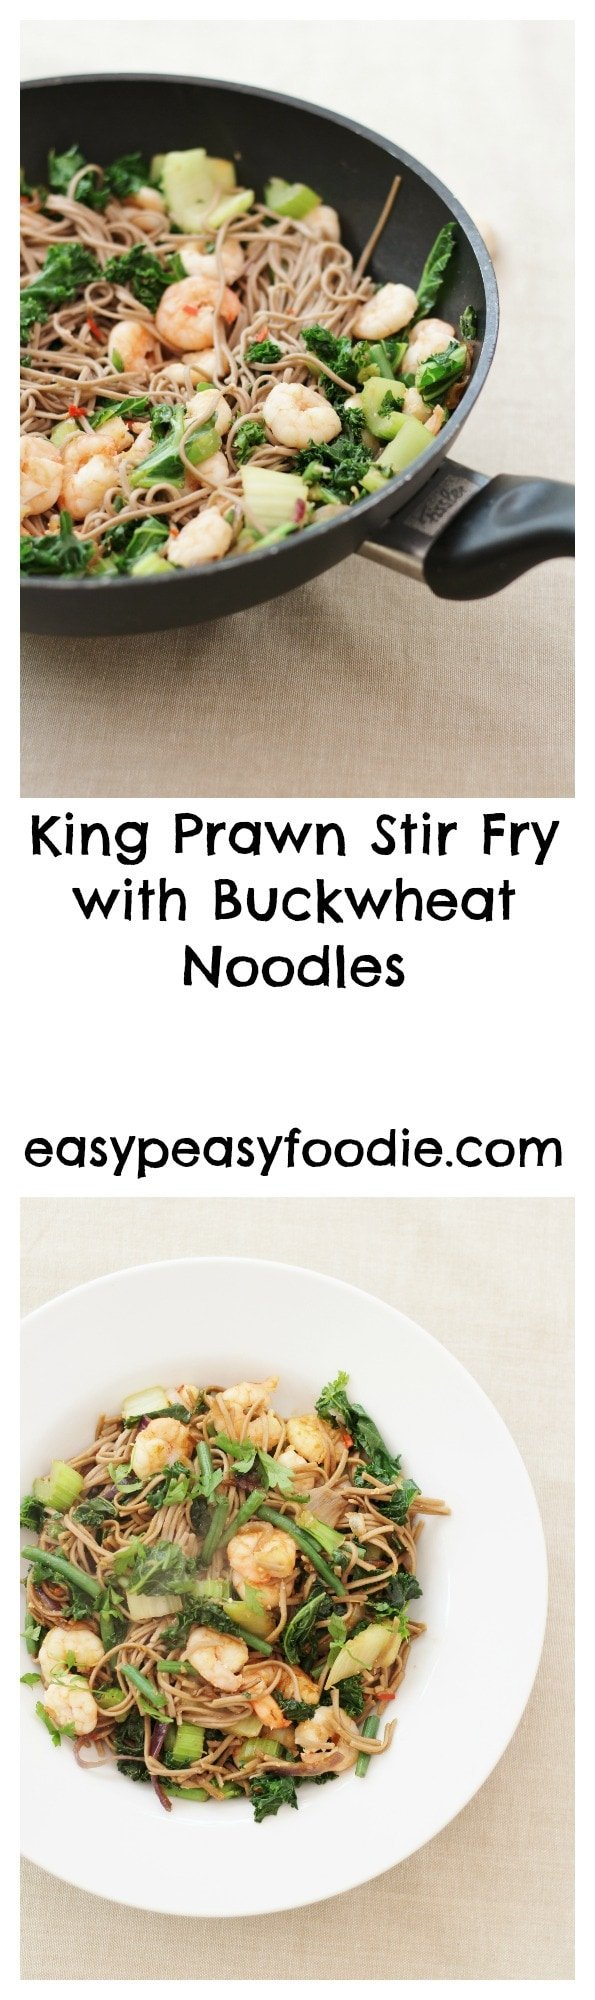 King Prawn Stir Fry with Buckwheat Noodles - pinnable image with text for Pinterest